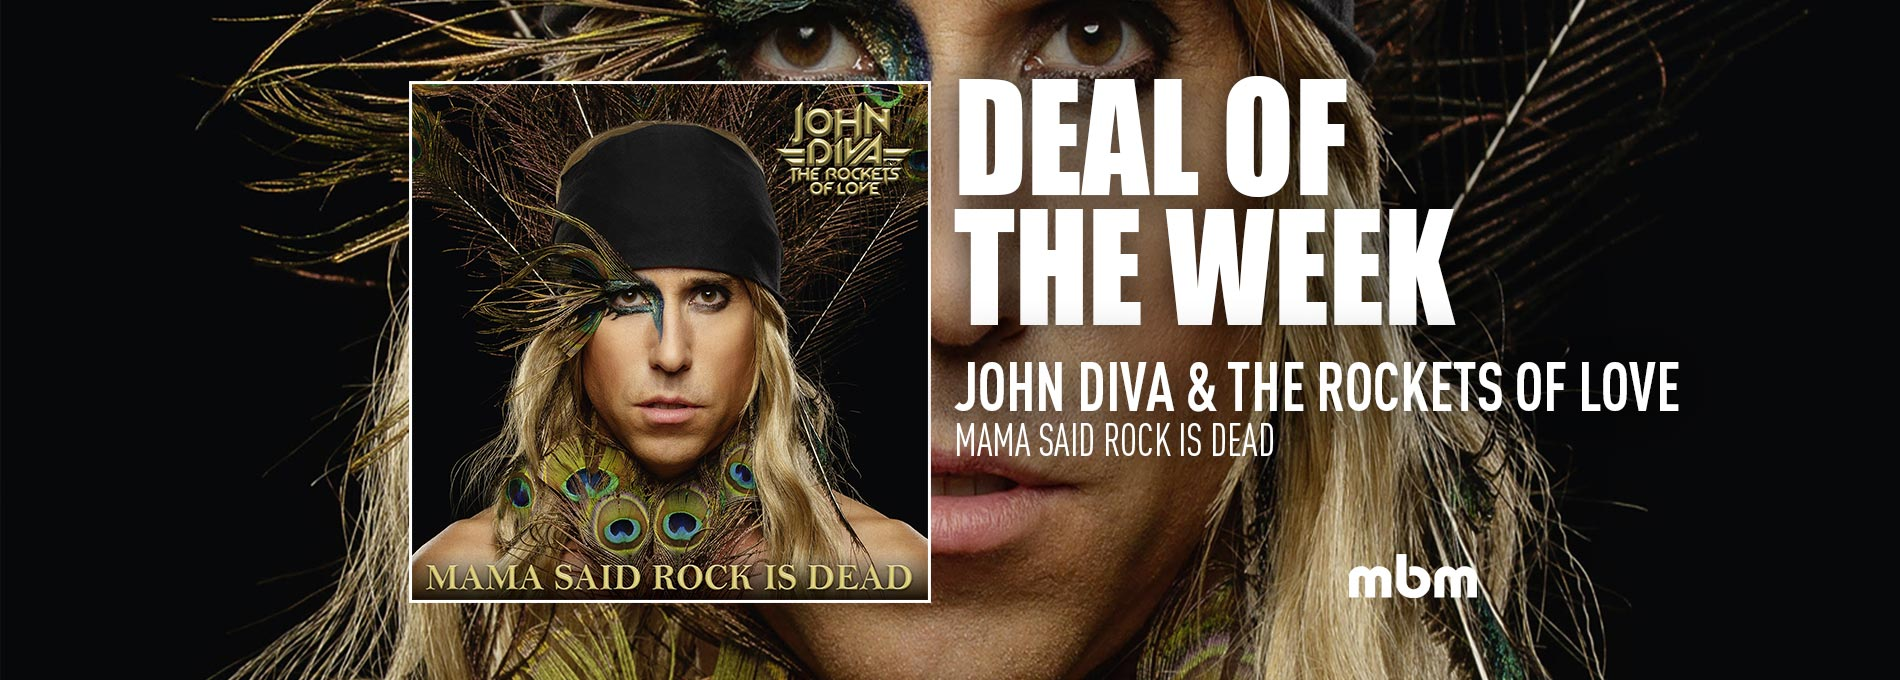 Deal Of The Week: JOHN DIVA & THE ROCKETS OF LOVE - Mama Said Rock Is Dead